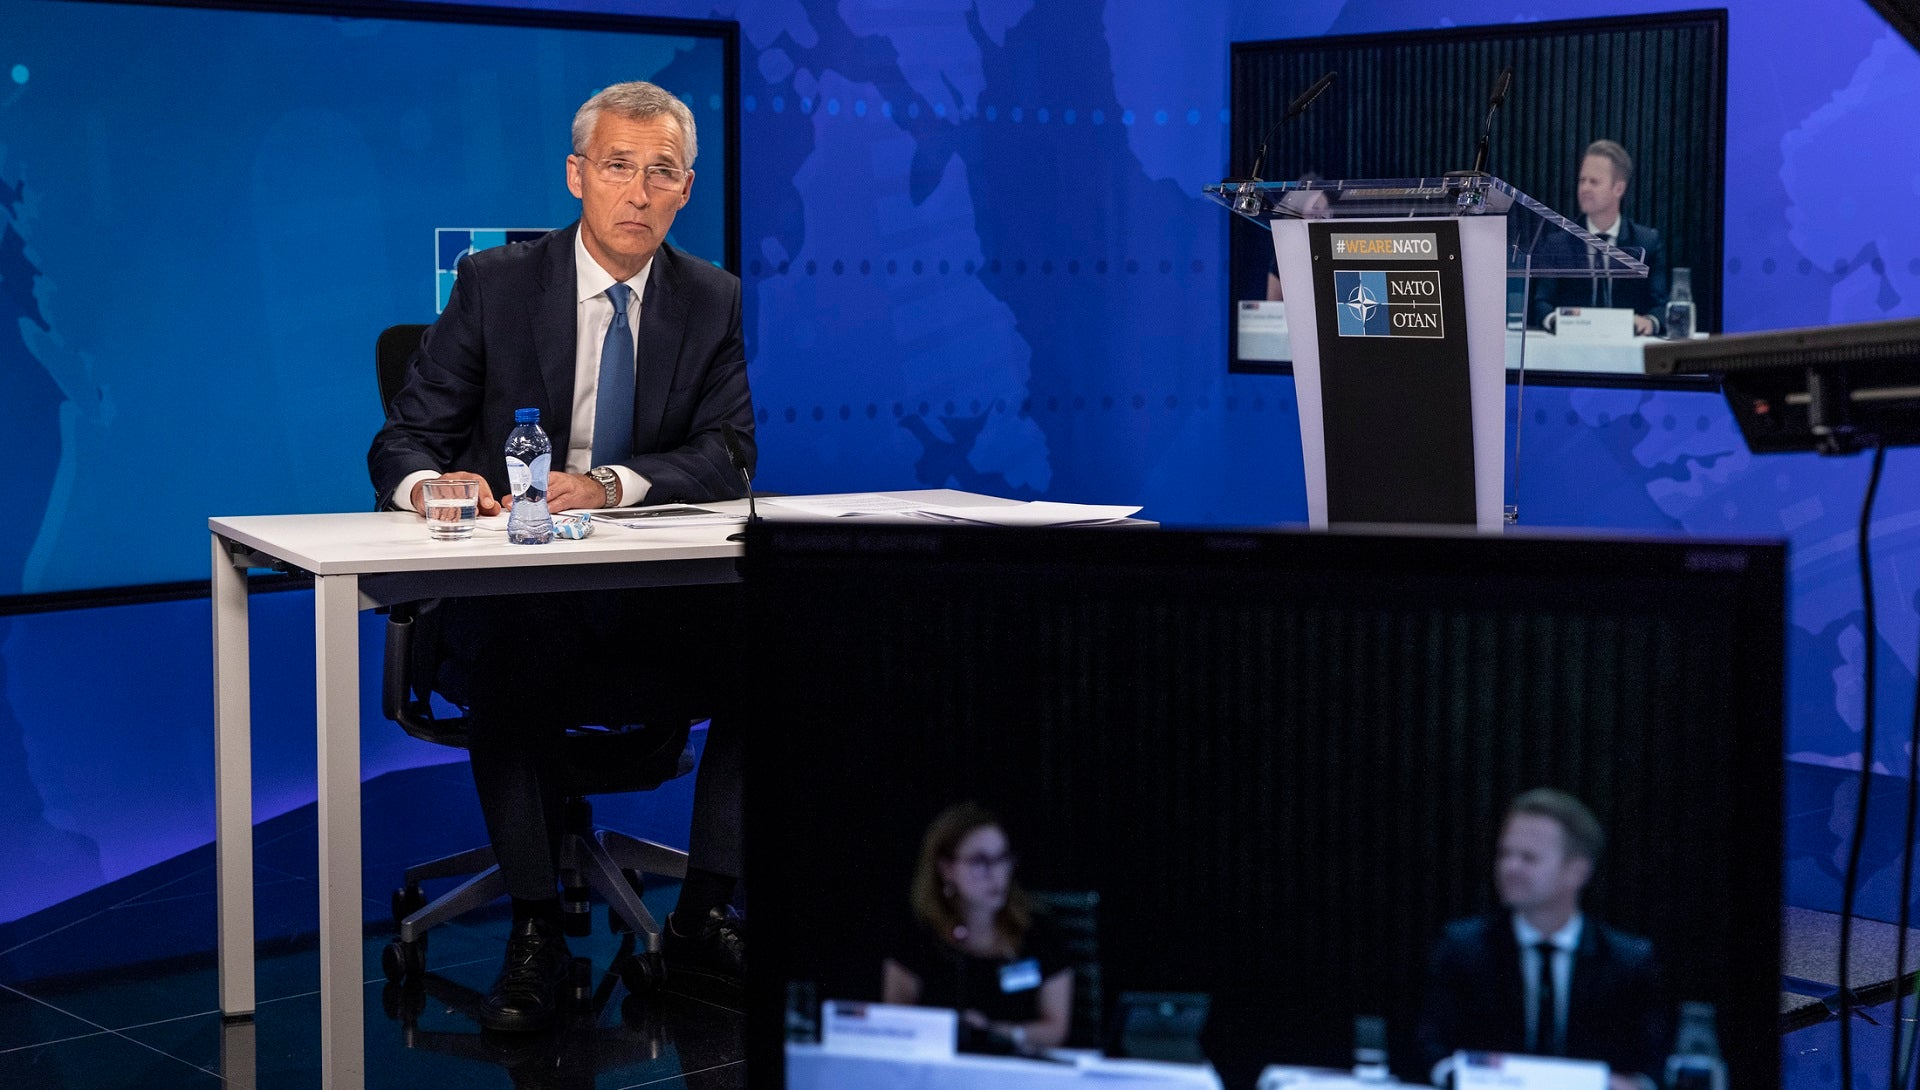 Nato secretary-general lays out priorities for nuclear disarmament